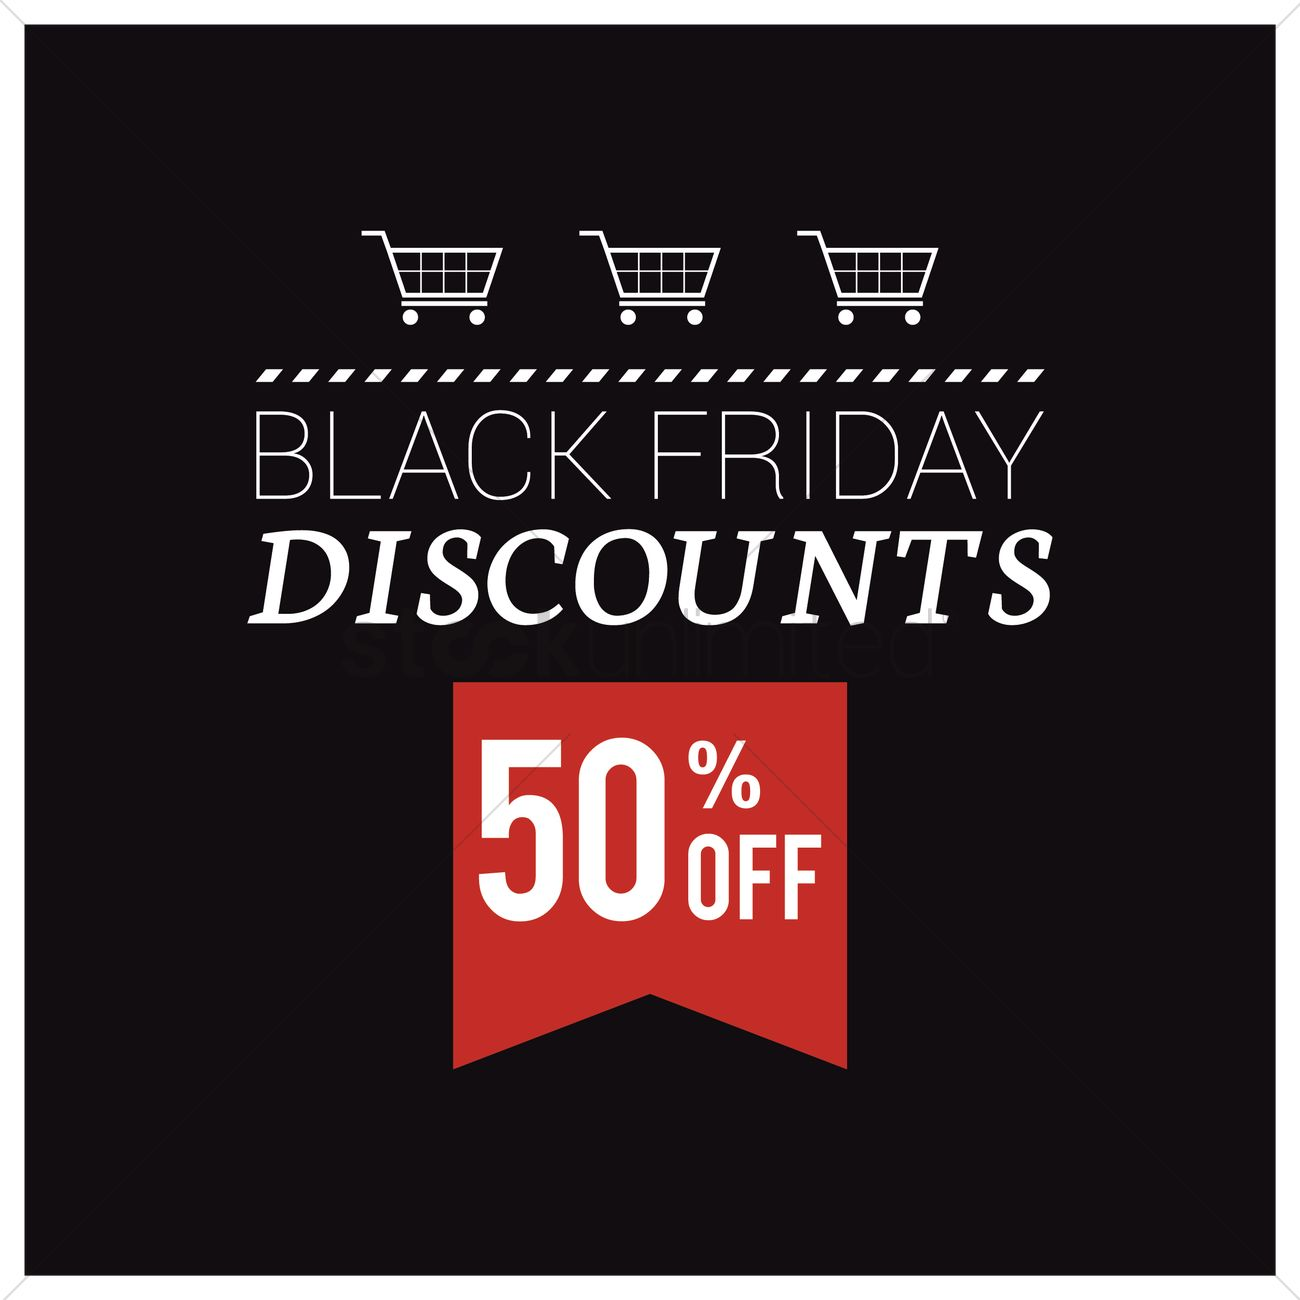 Black friday sale wallpaper Vector Image   1583535 StockUnlimited 1300x1300